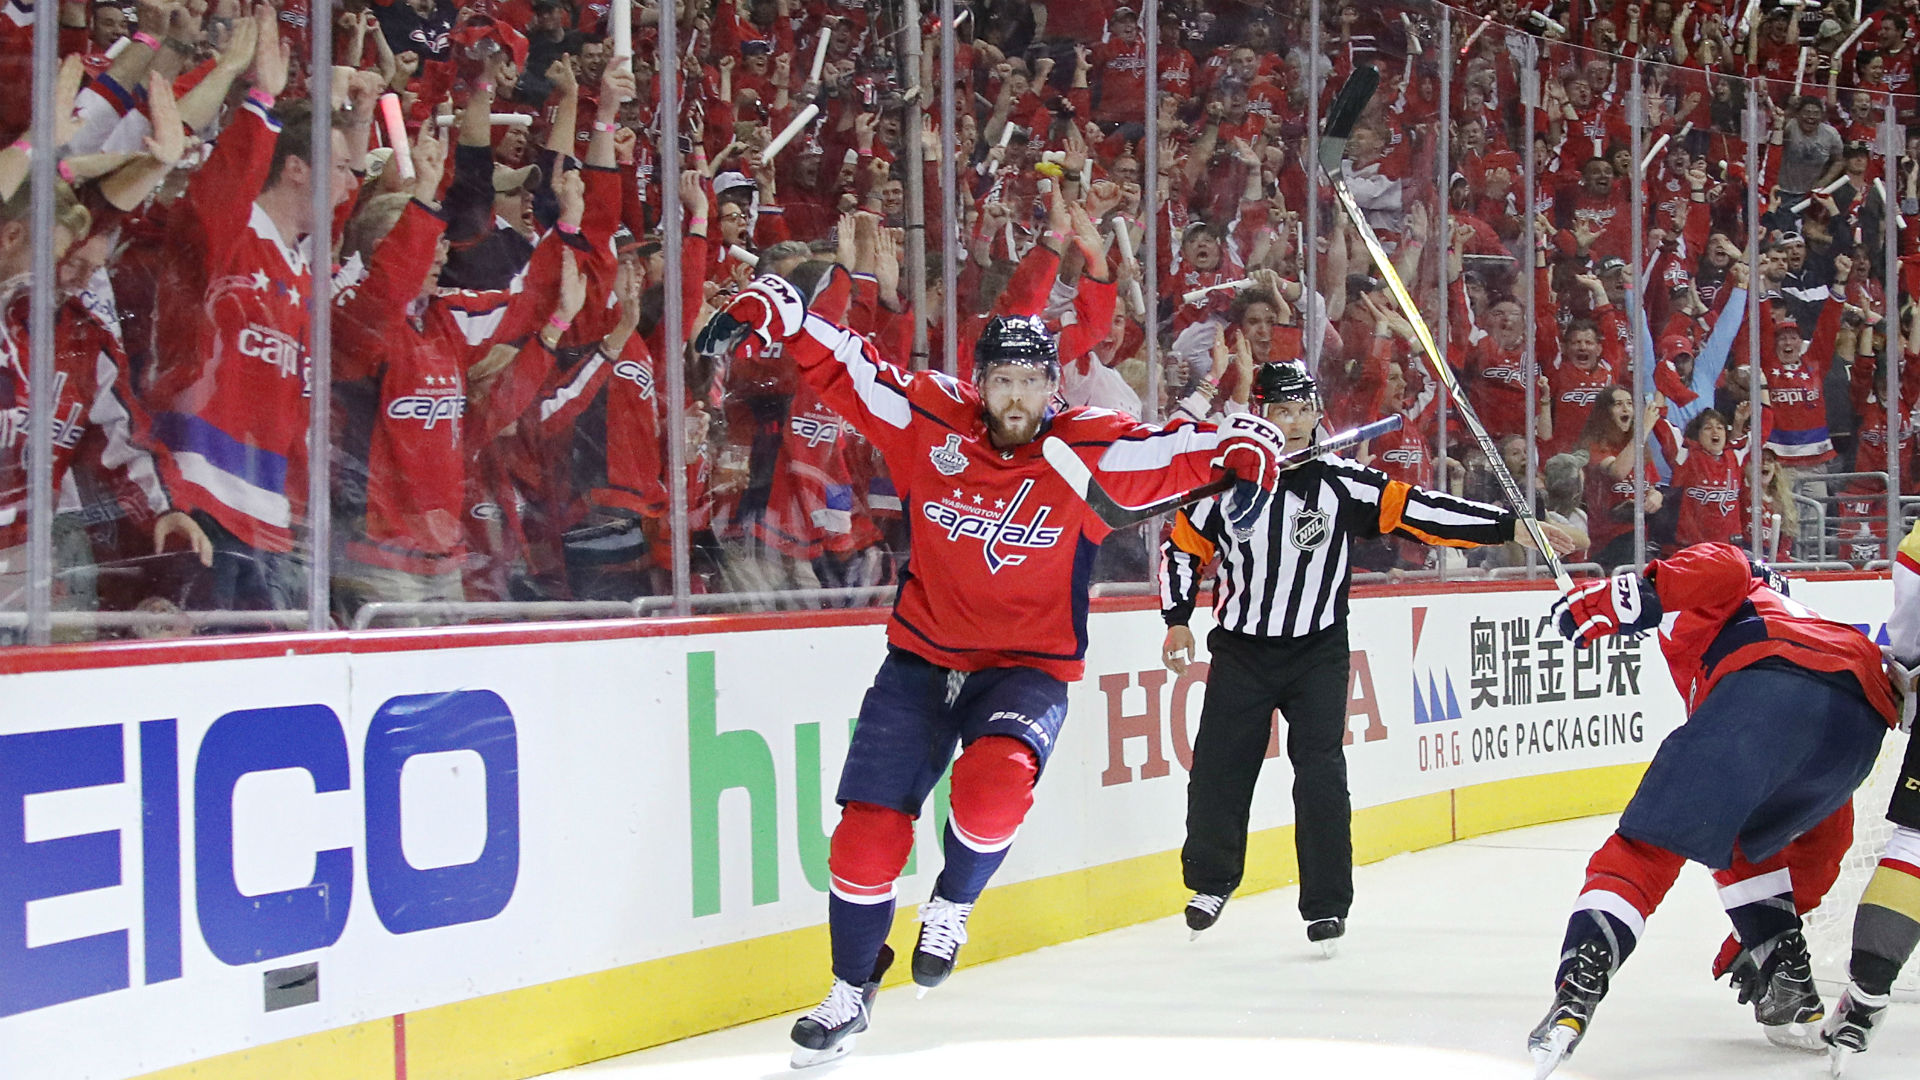 Stanley Cup Final 2018: 3 takeaways from the Capitals' Game 3 victory